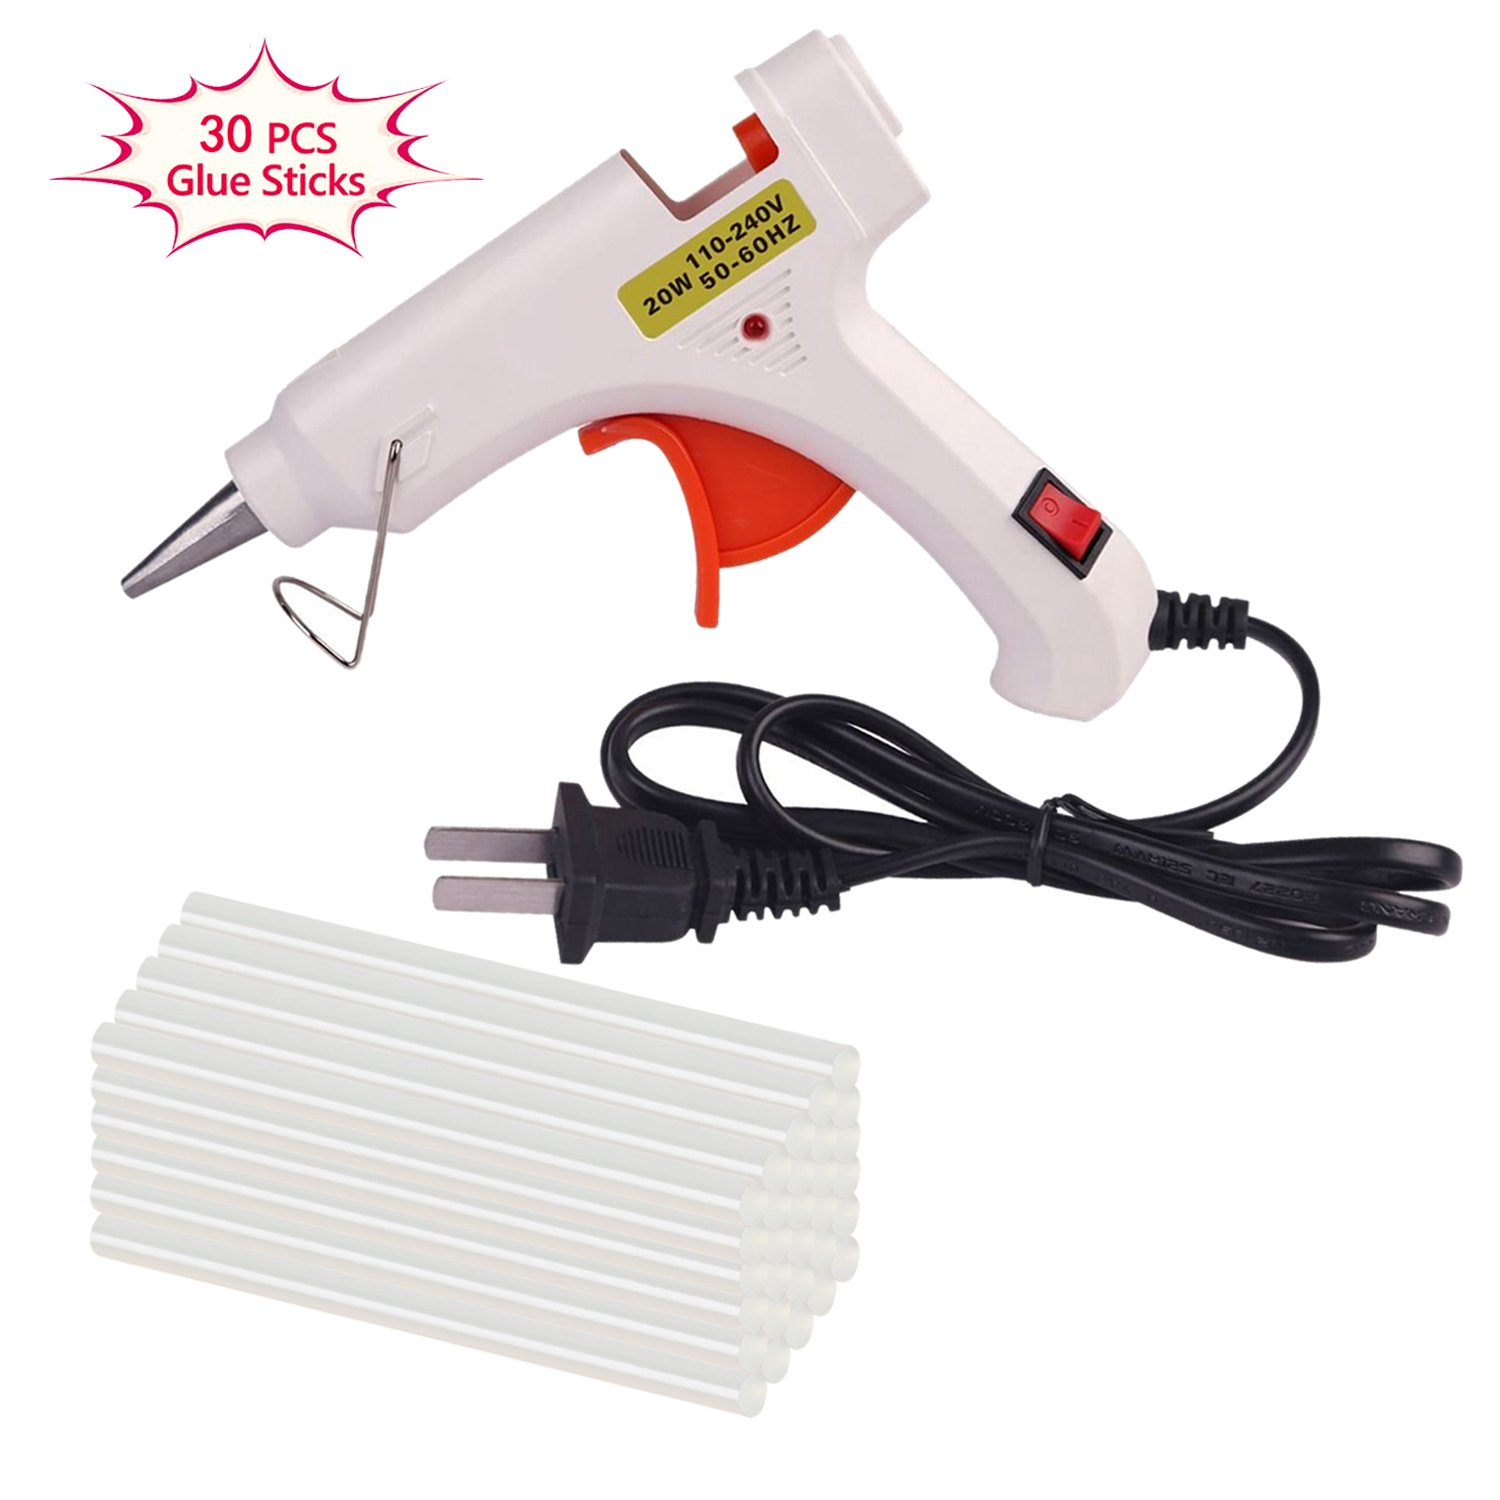 Hot Melt Glue gun with 30 pcs free glue sticks, High temperature melting glue gun with safety stand and built in fuse for over heat protection for small craft projects, home, office and quick repair by FLY5D (Image #1)